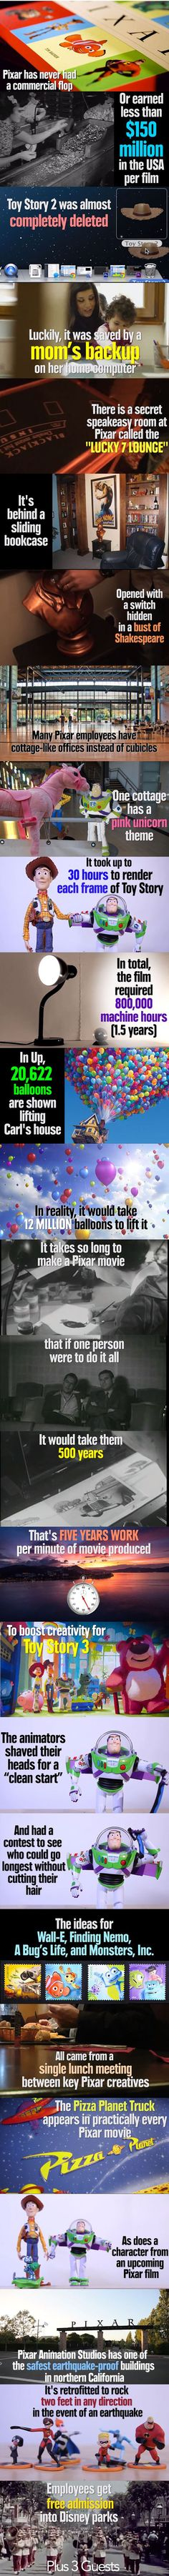 time for some pixar facts! - Imgur